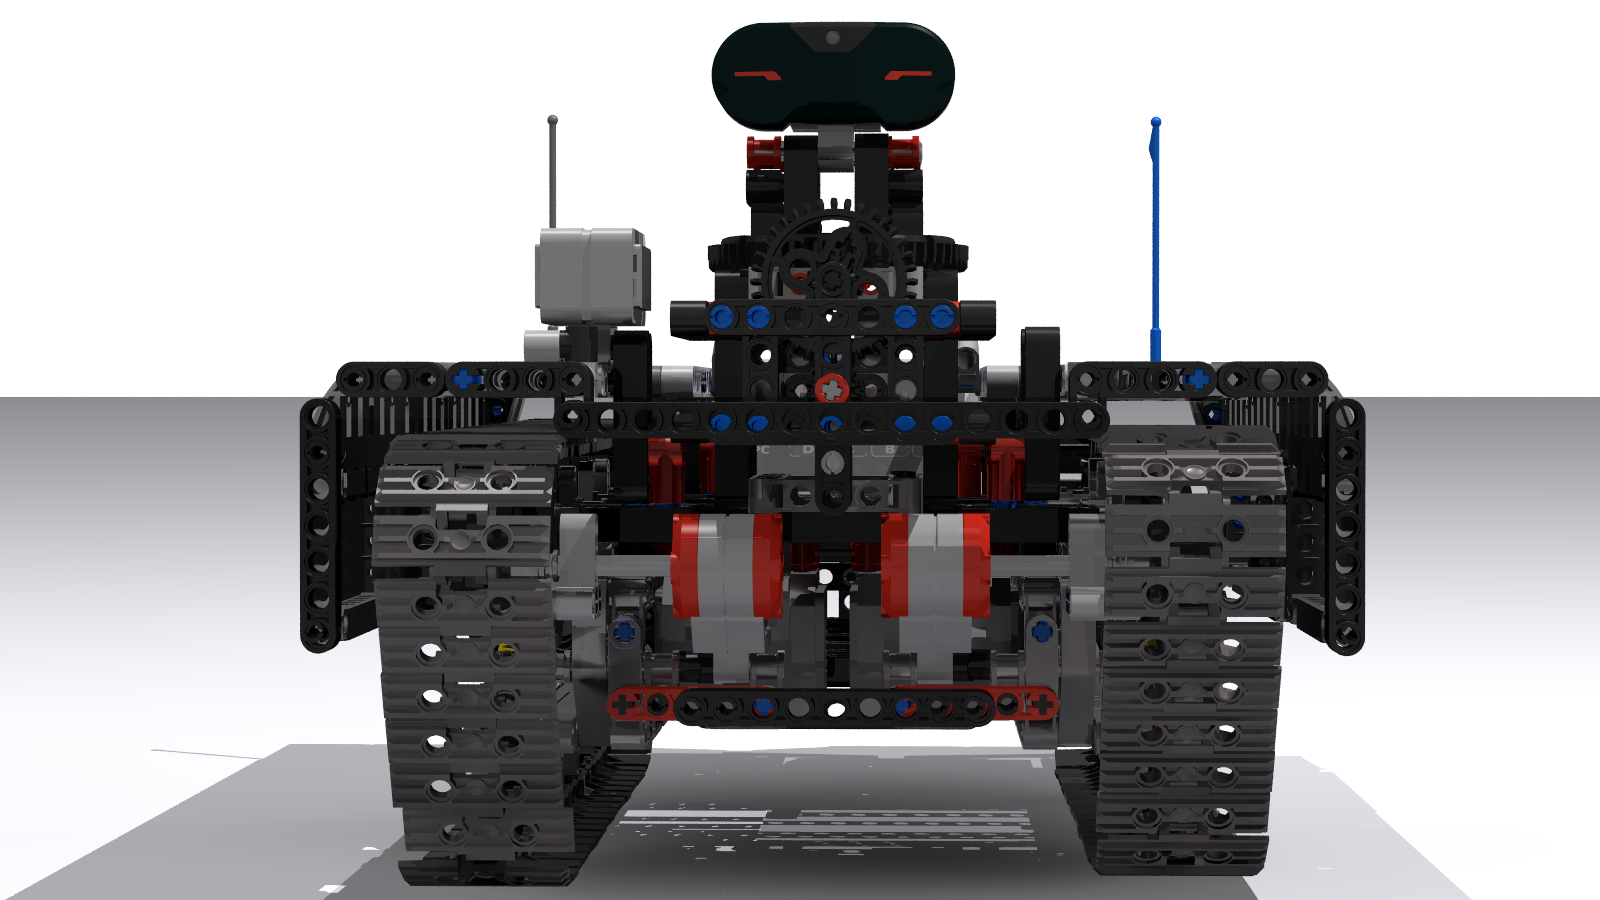 Ev3 Tracked Explorer Mark II - Front View